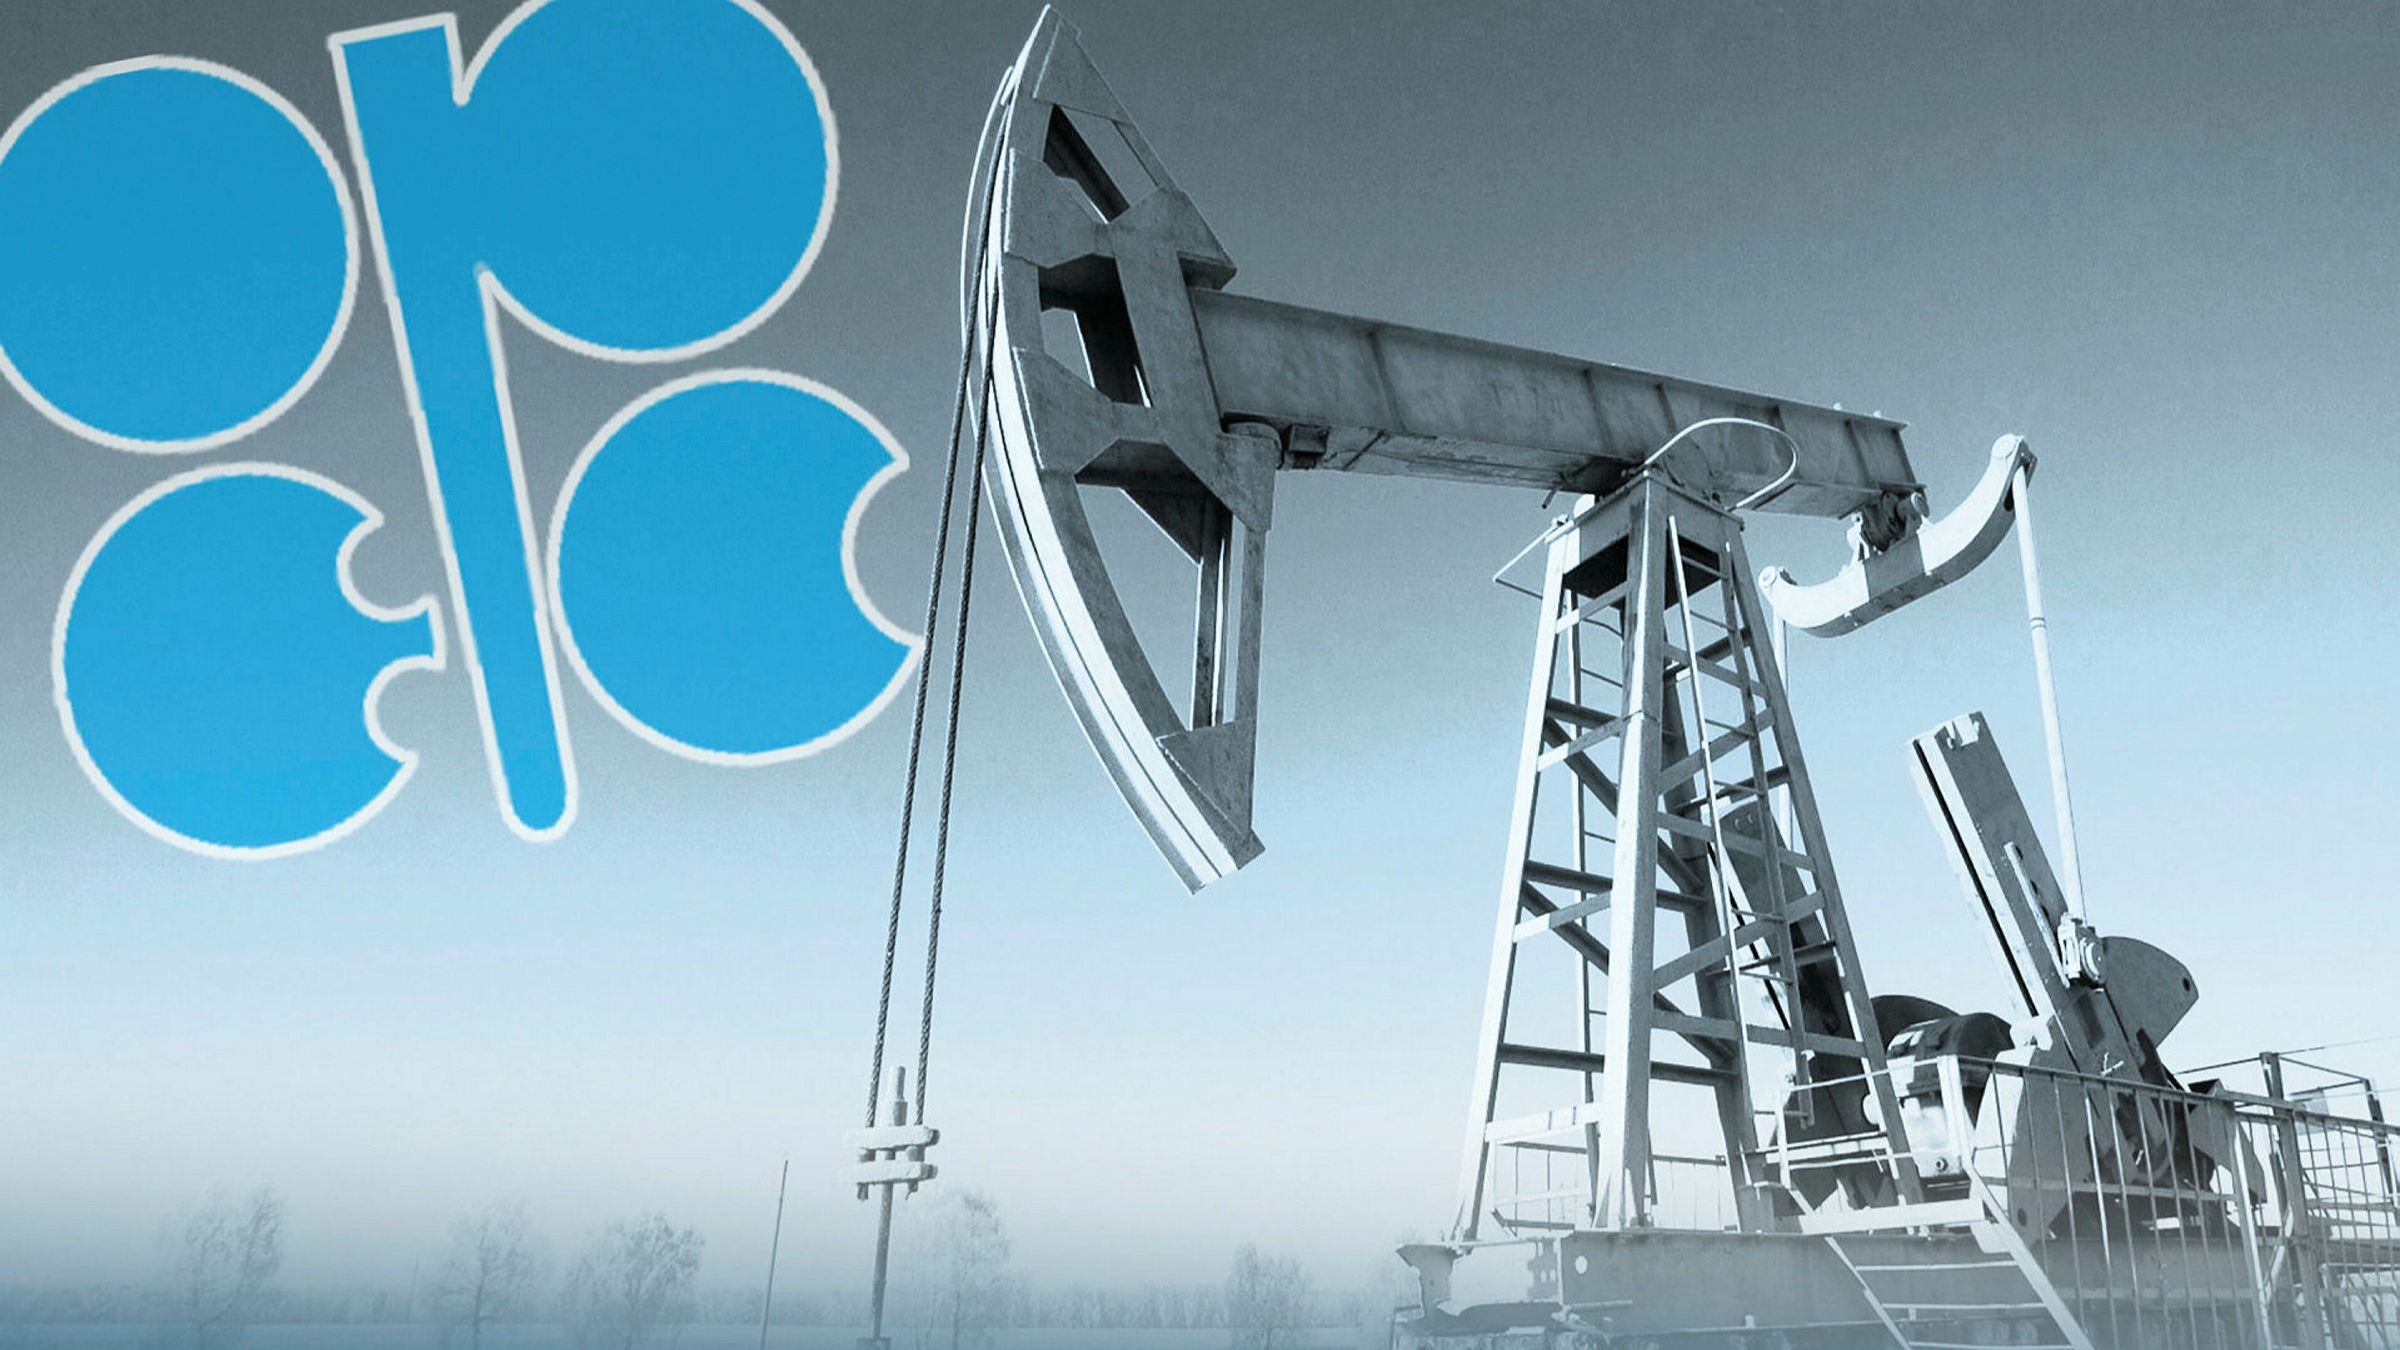 Why is Opec+ in turmoil when oil prices are elevated? | Financial Times